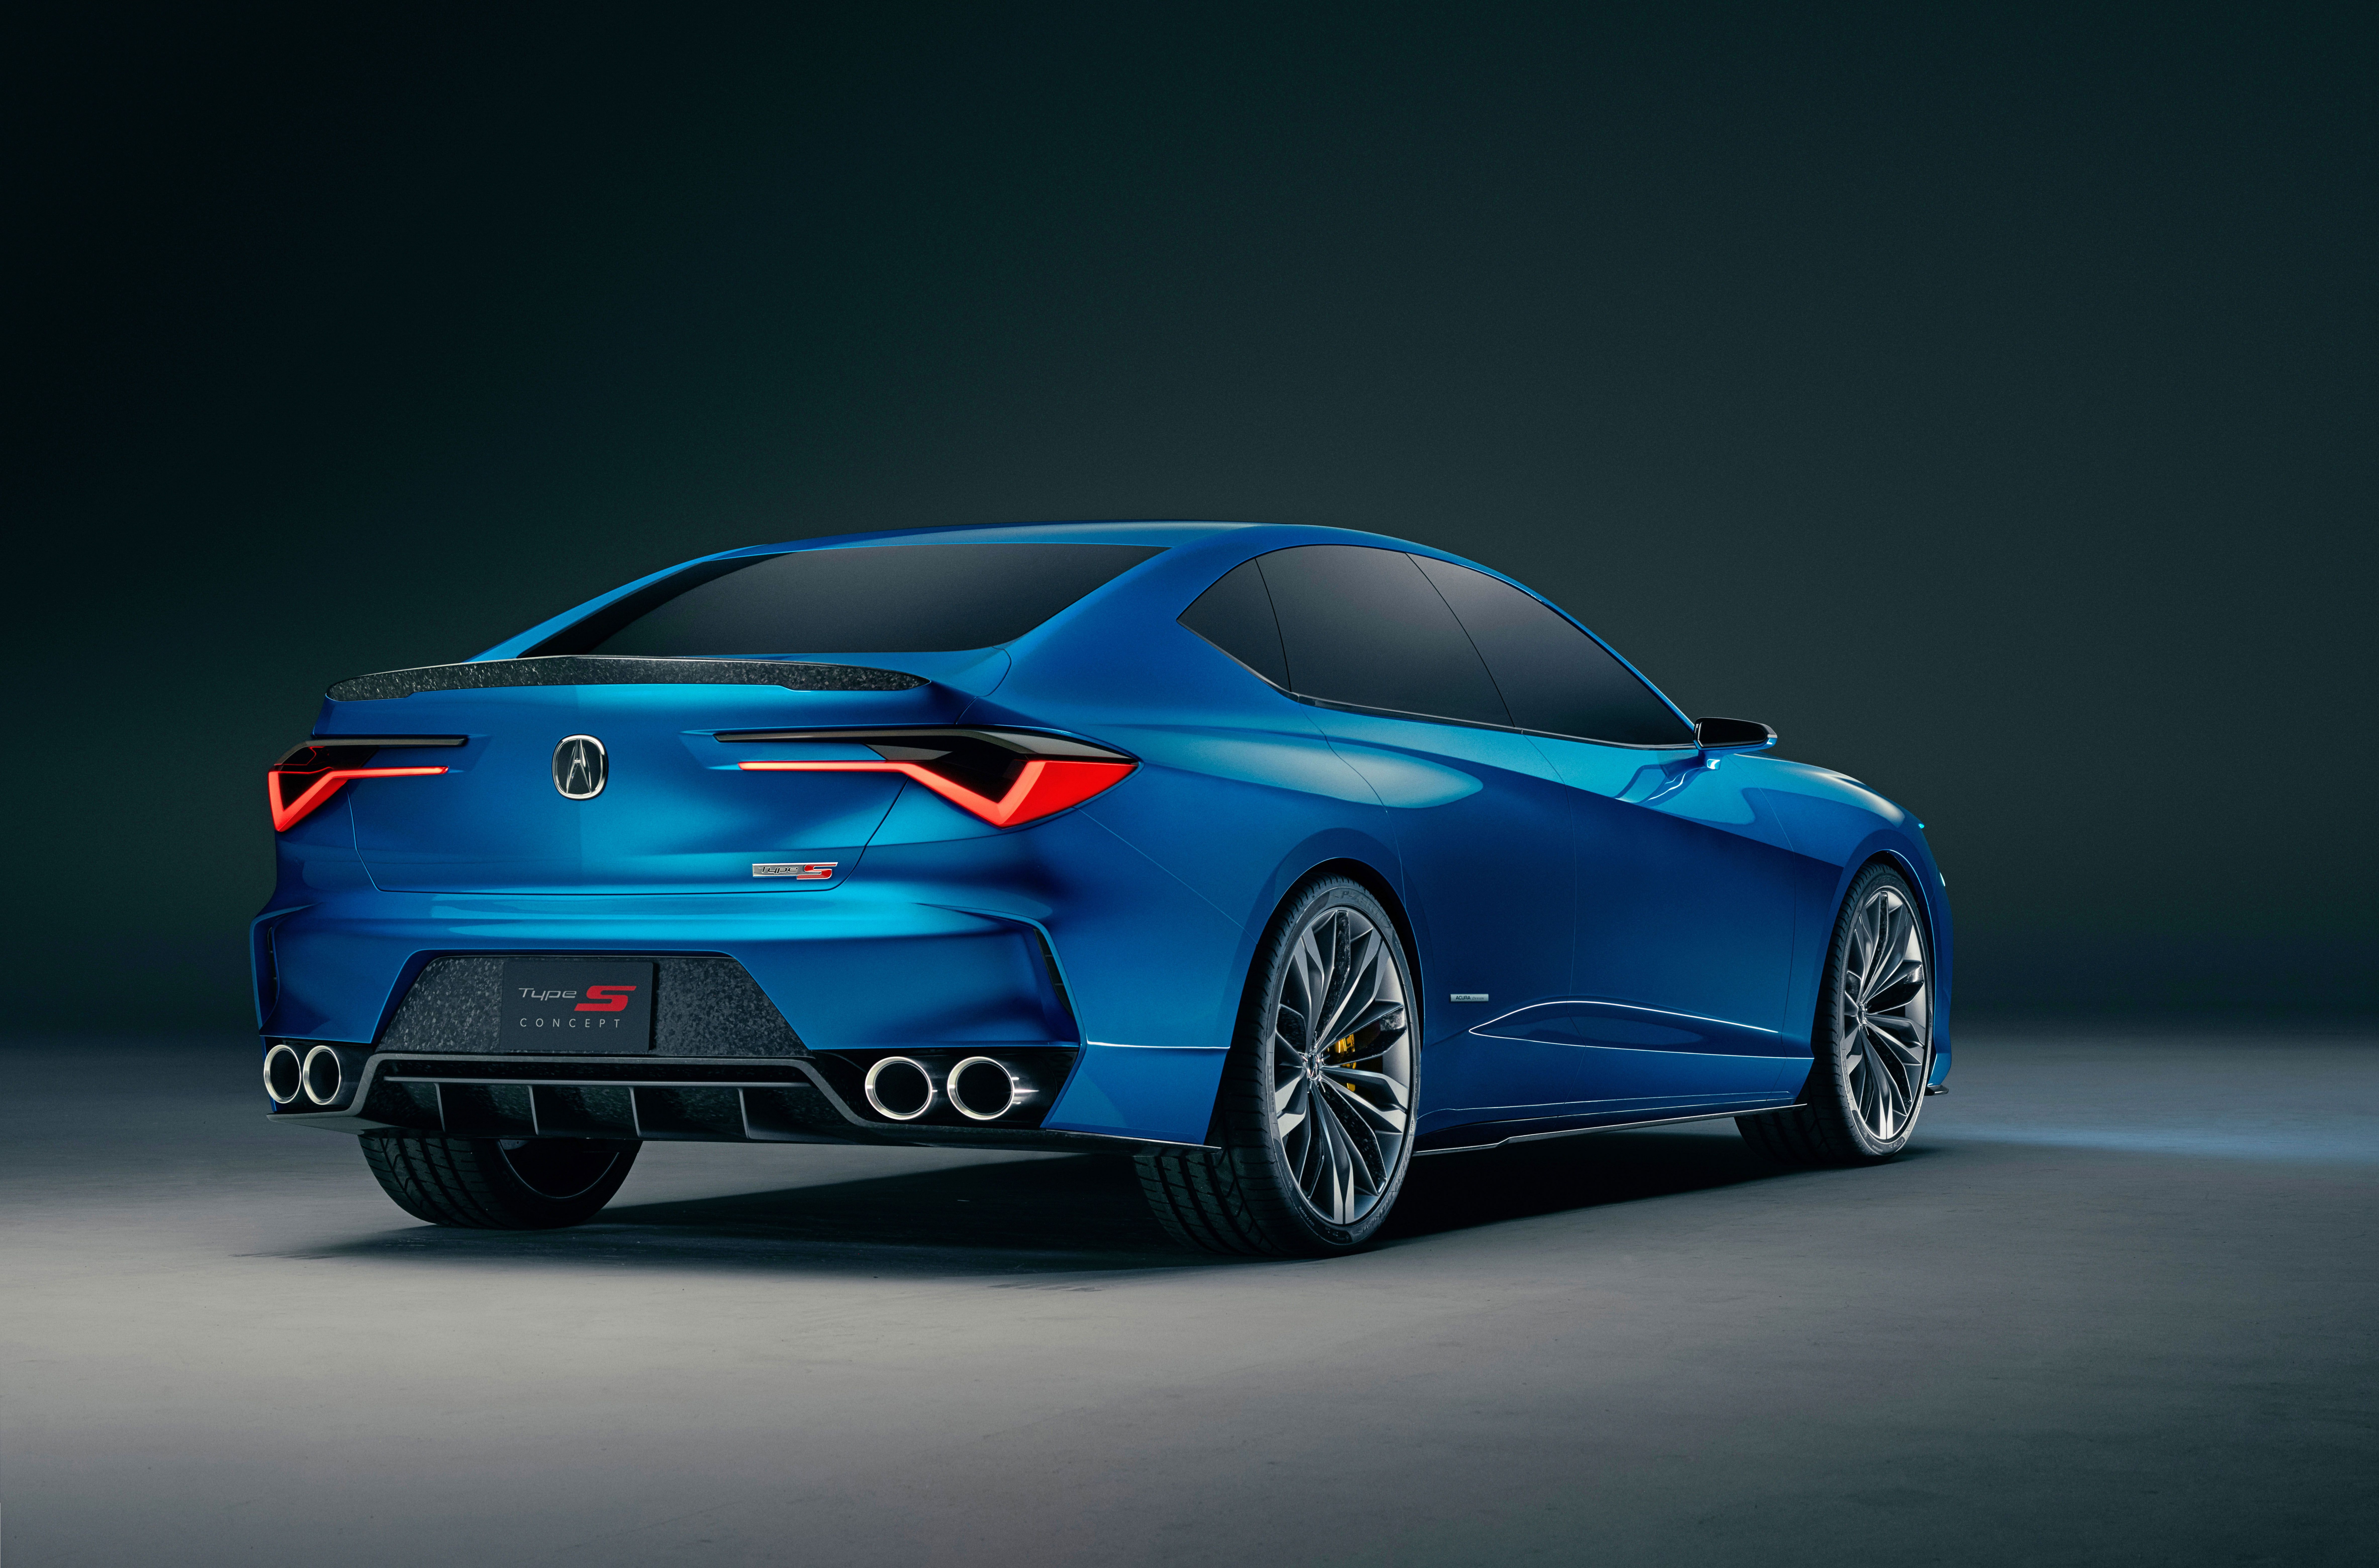 Redesign and Concept Acura Tlx Redesign 2022